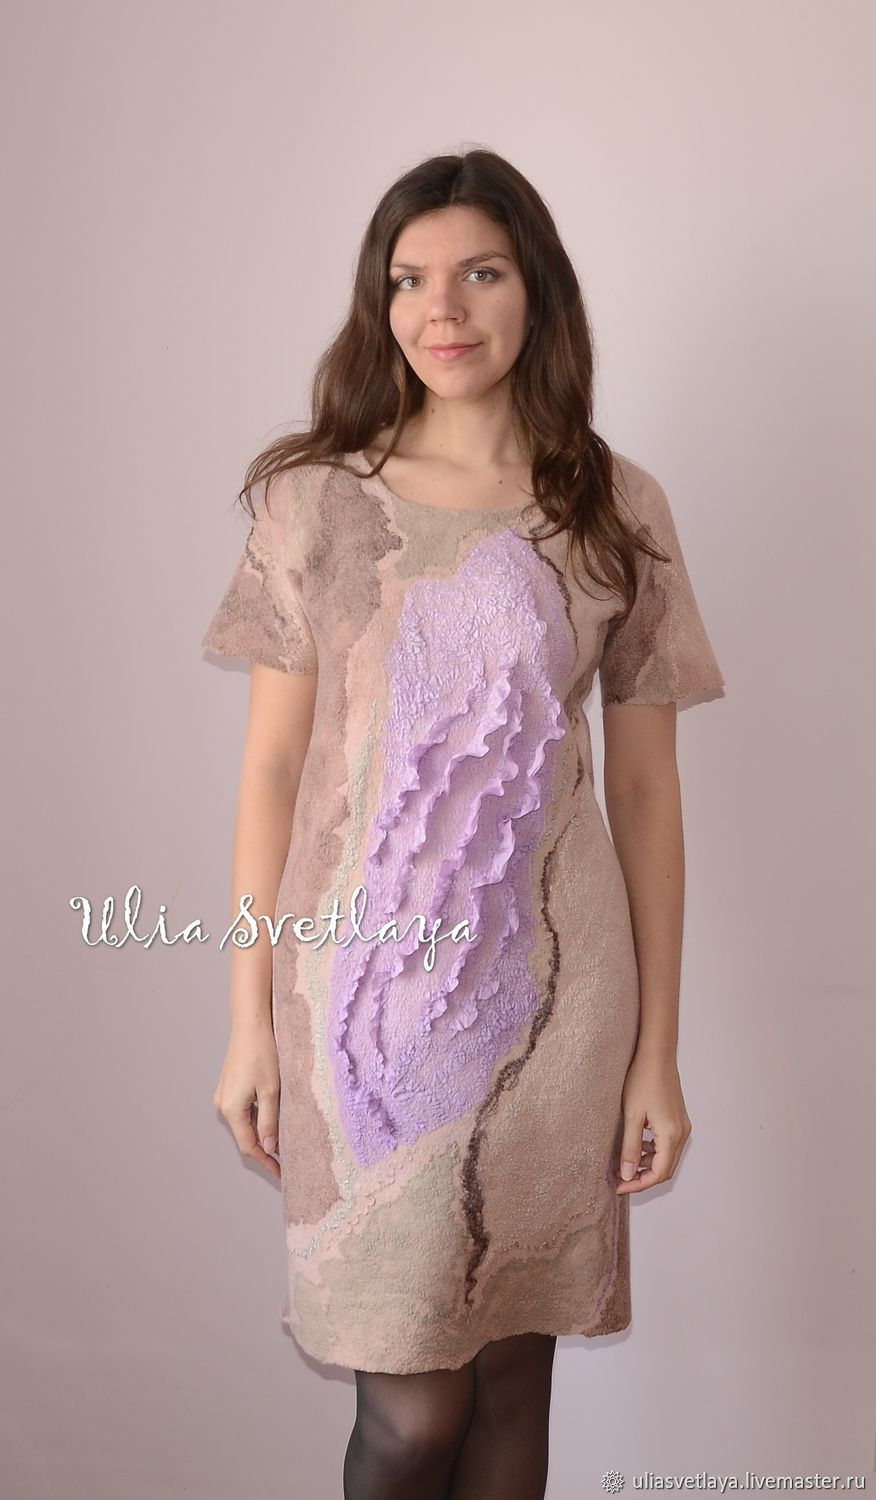 Felted dress 'A Touch of tenderness', Dresses, Zaporozhye,  Фото №1